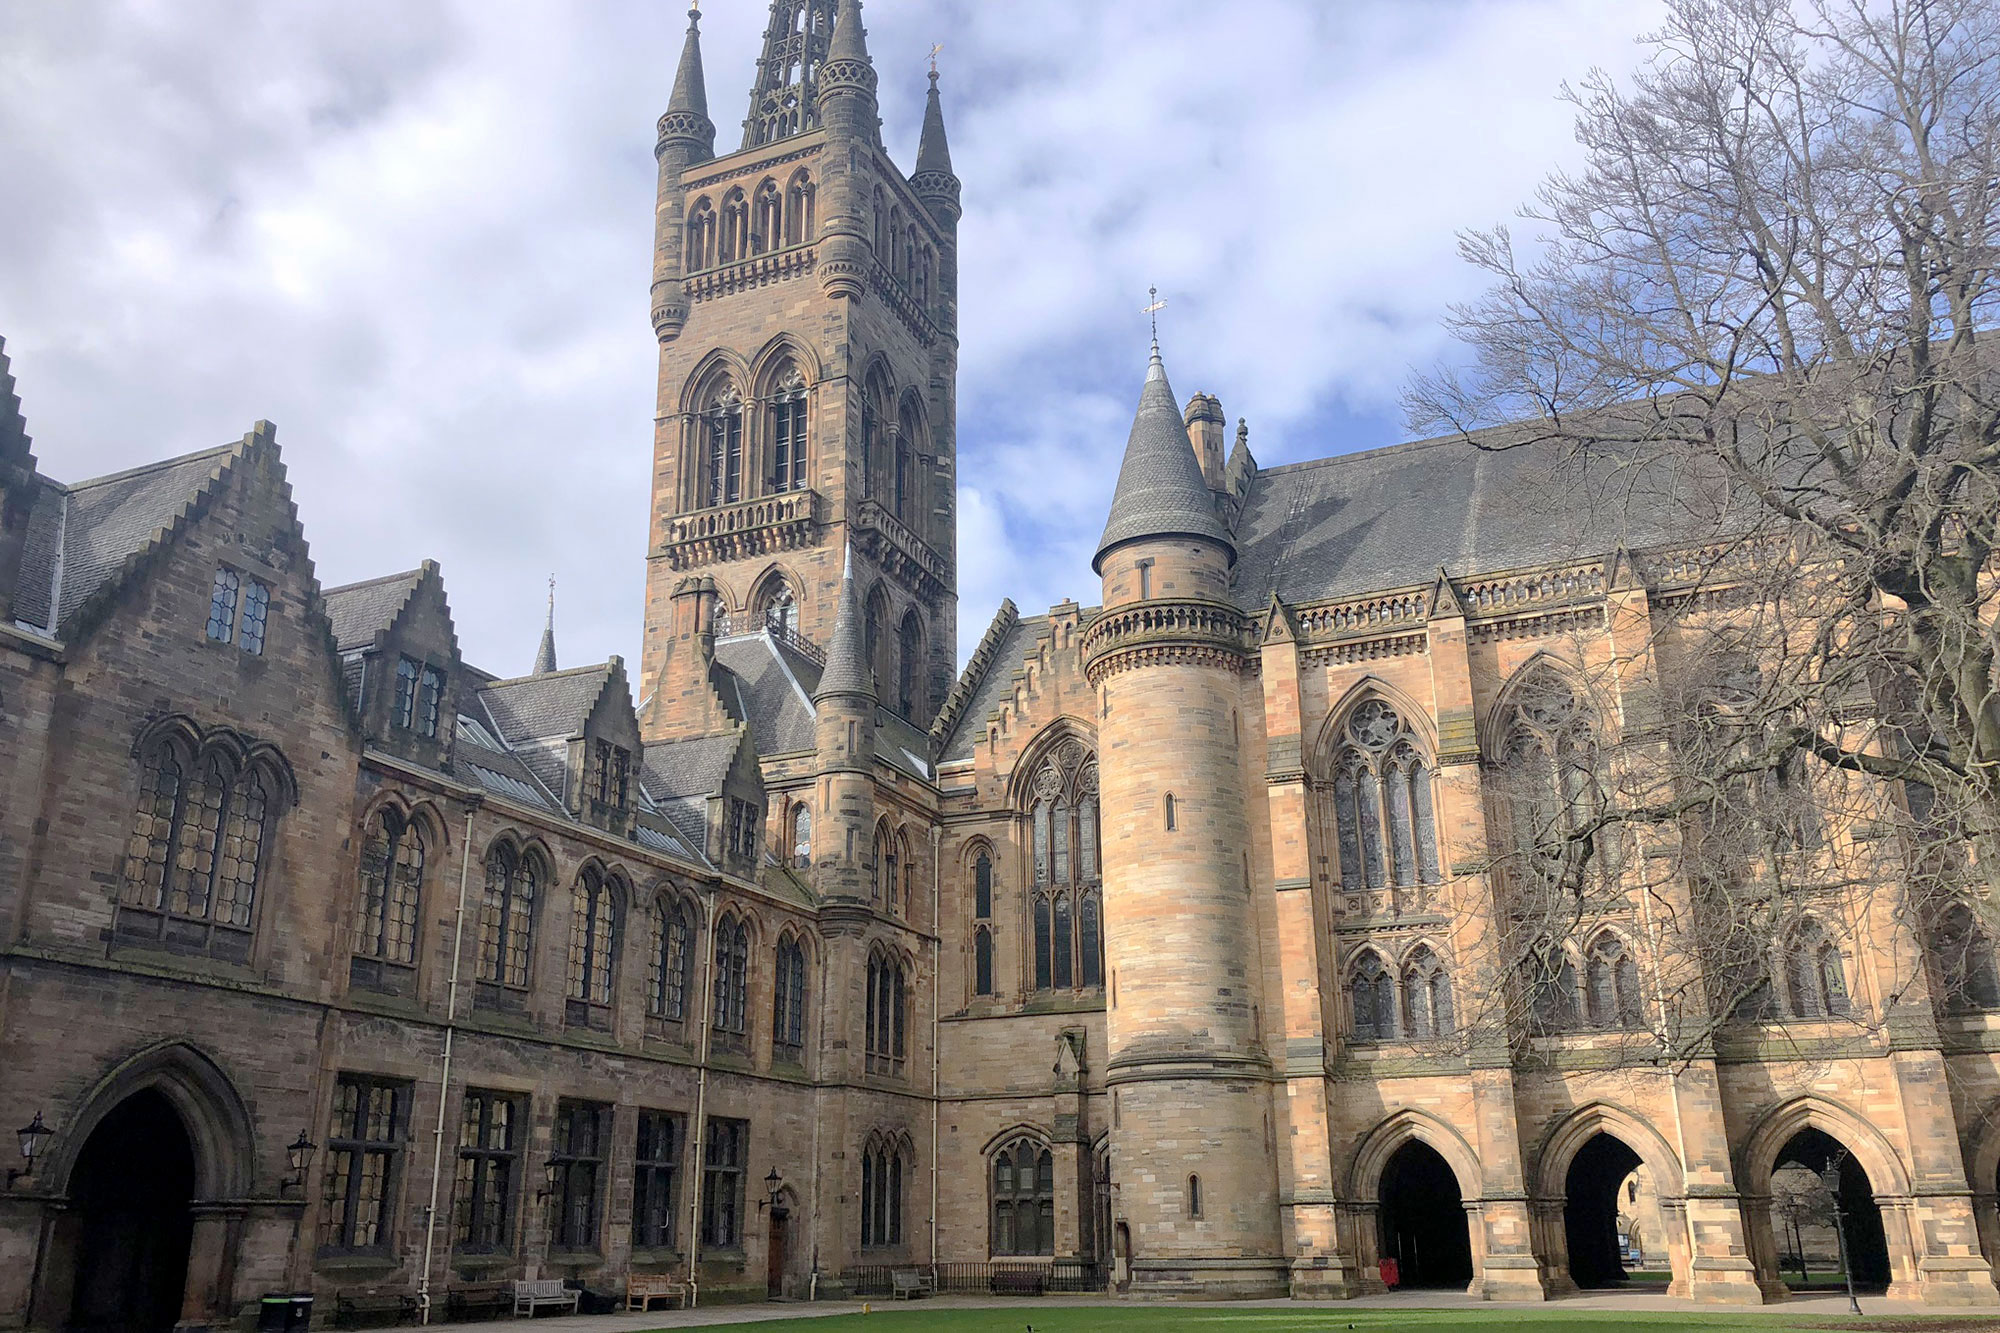 Exterior view of the main building at the University of Glasgow